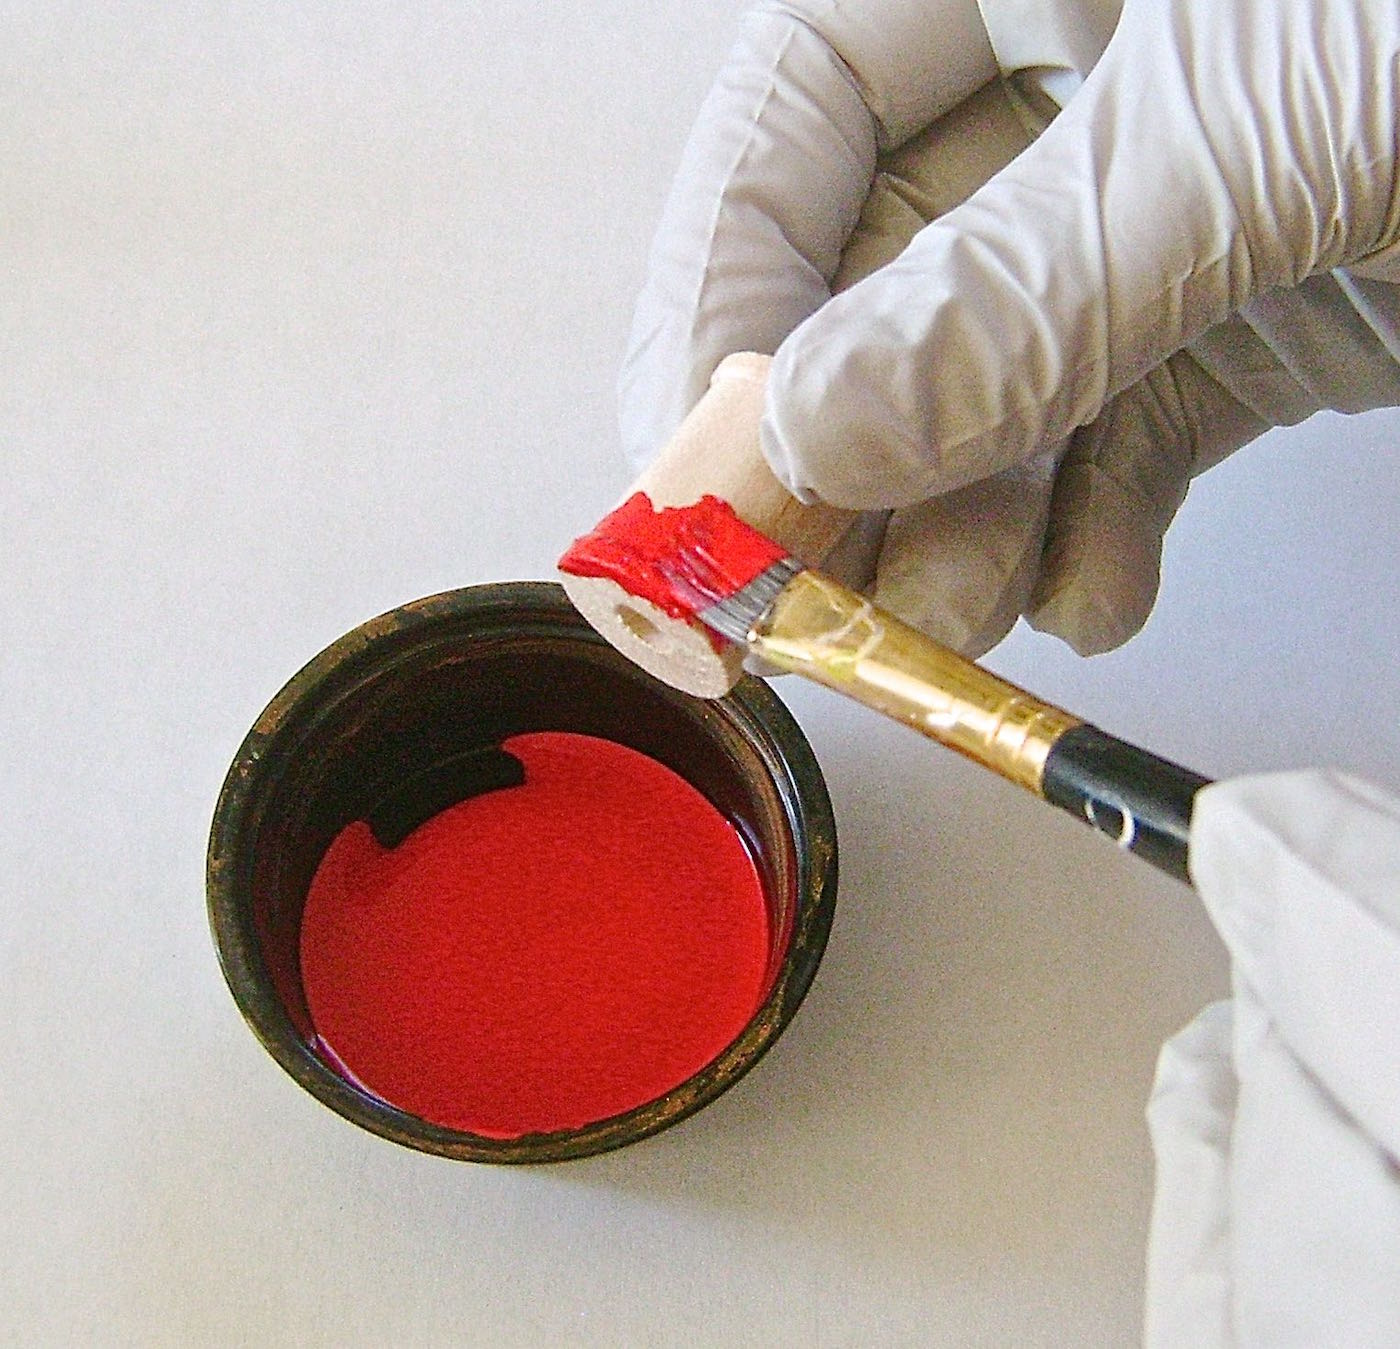 step 1 - Paint the tops and bottoms of the spools with red craft paint.